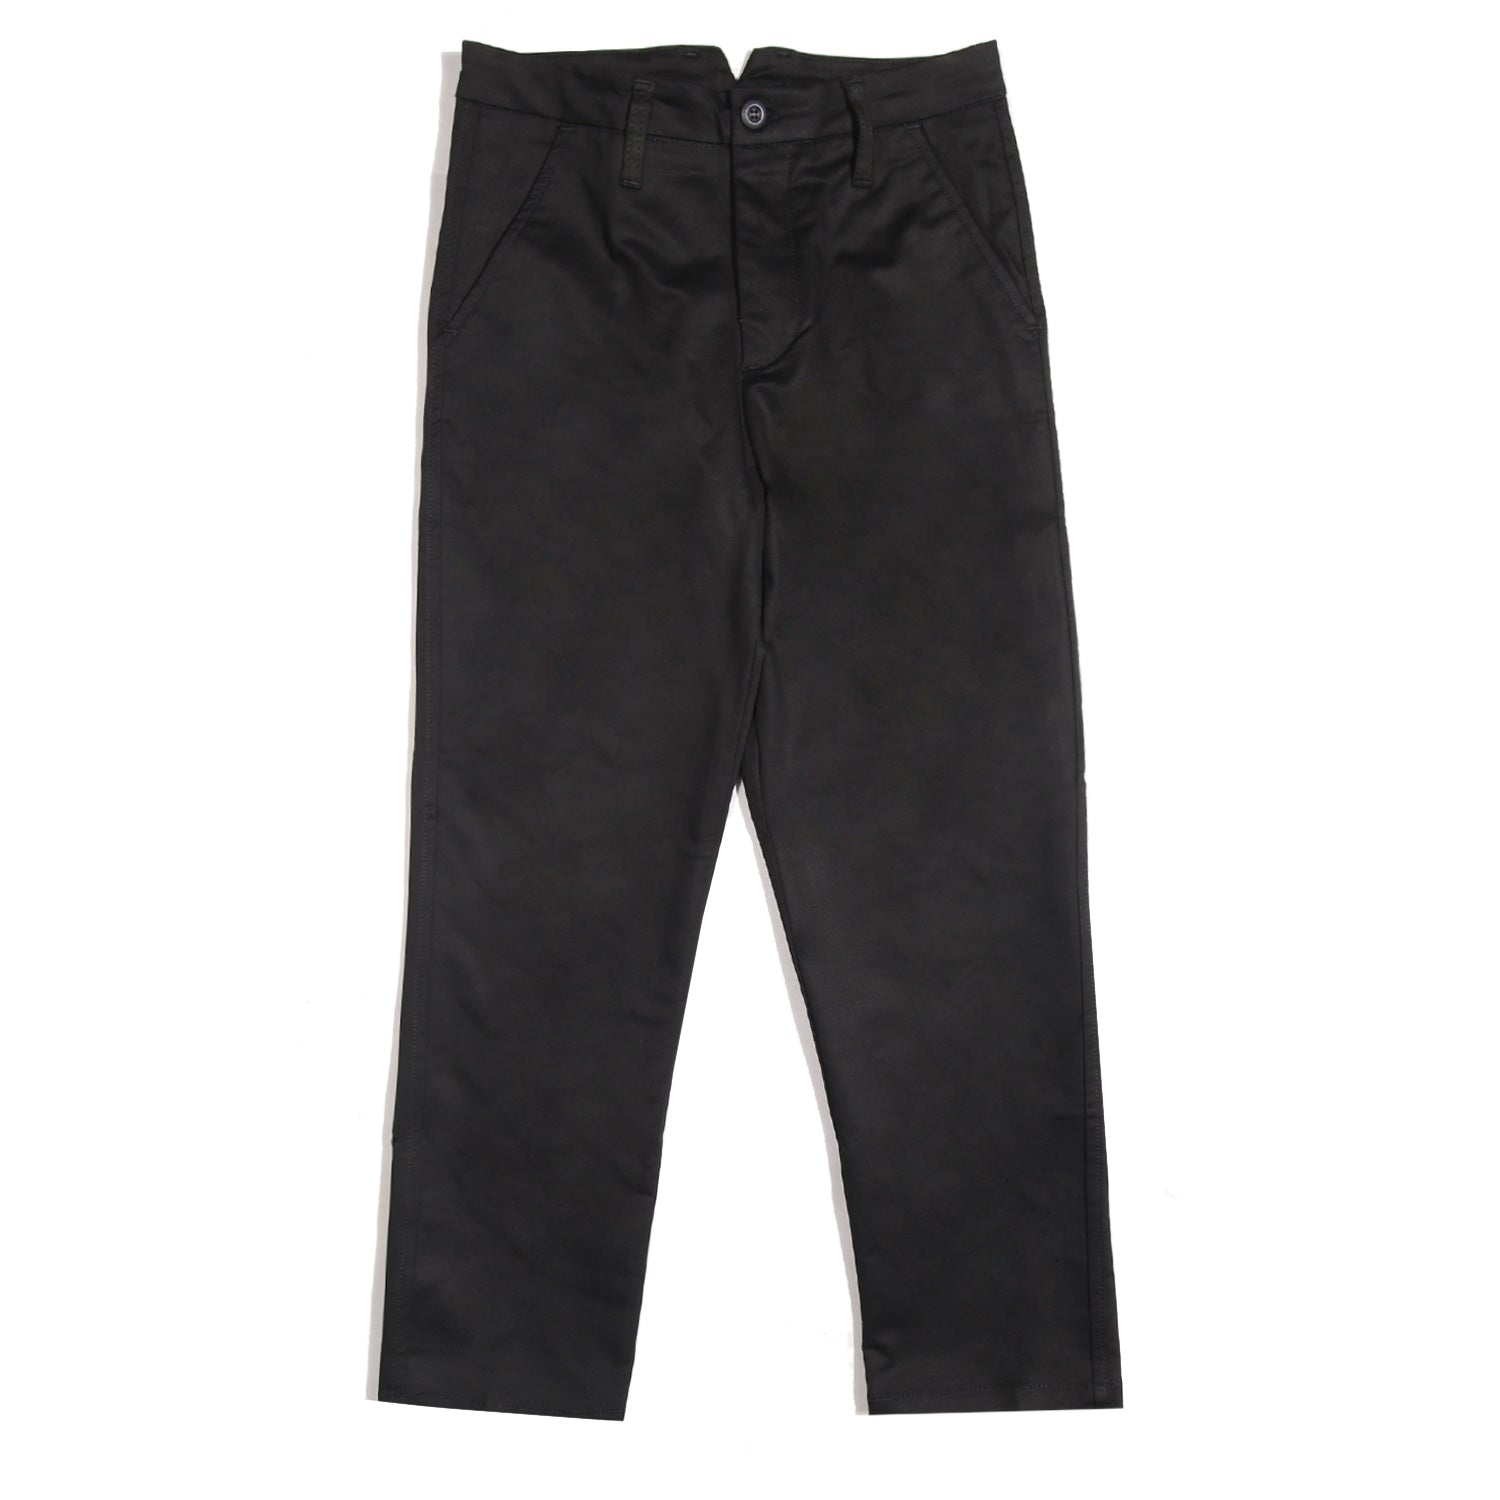 Rune Black Ankle Pants